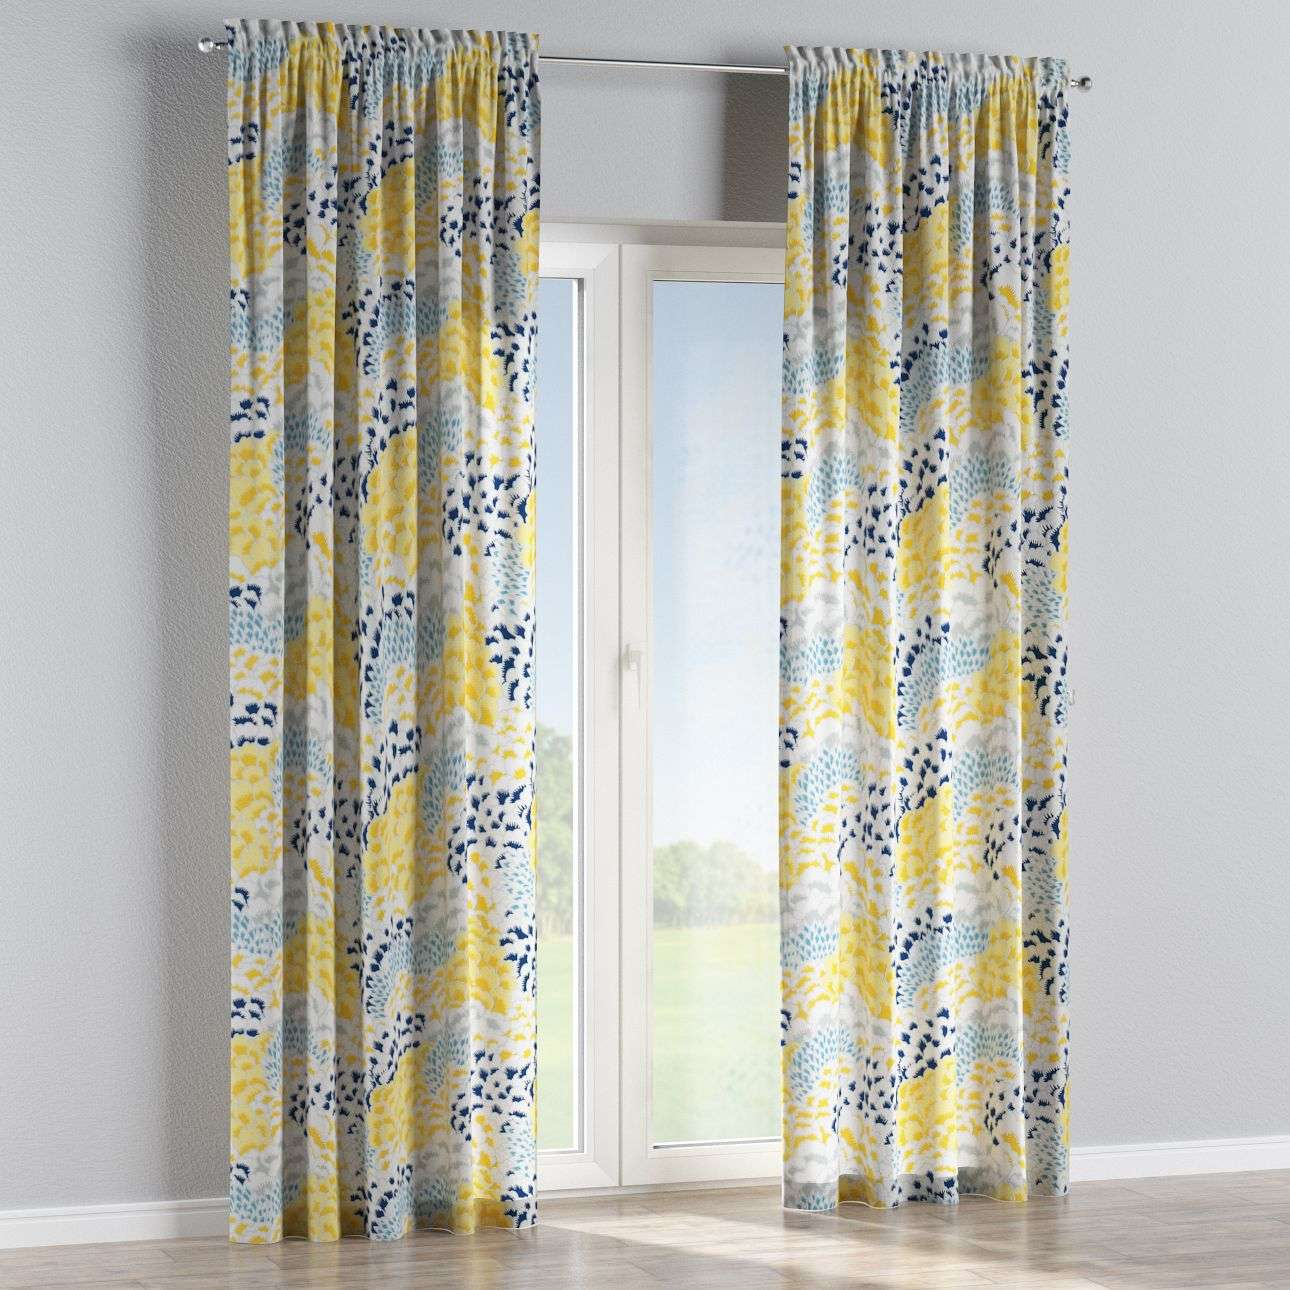 Slot and frill curtains in collection Brooklyn, fabric: 137-86